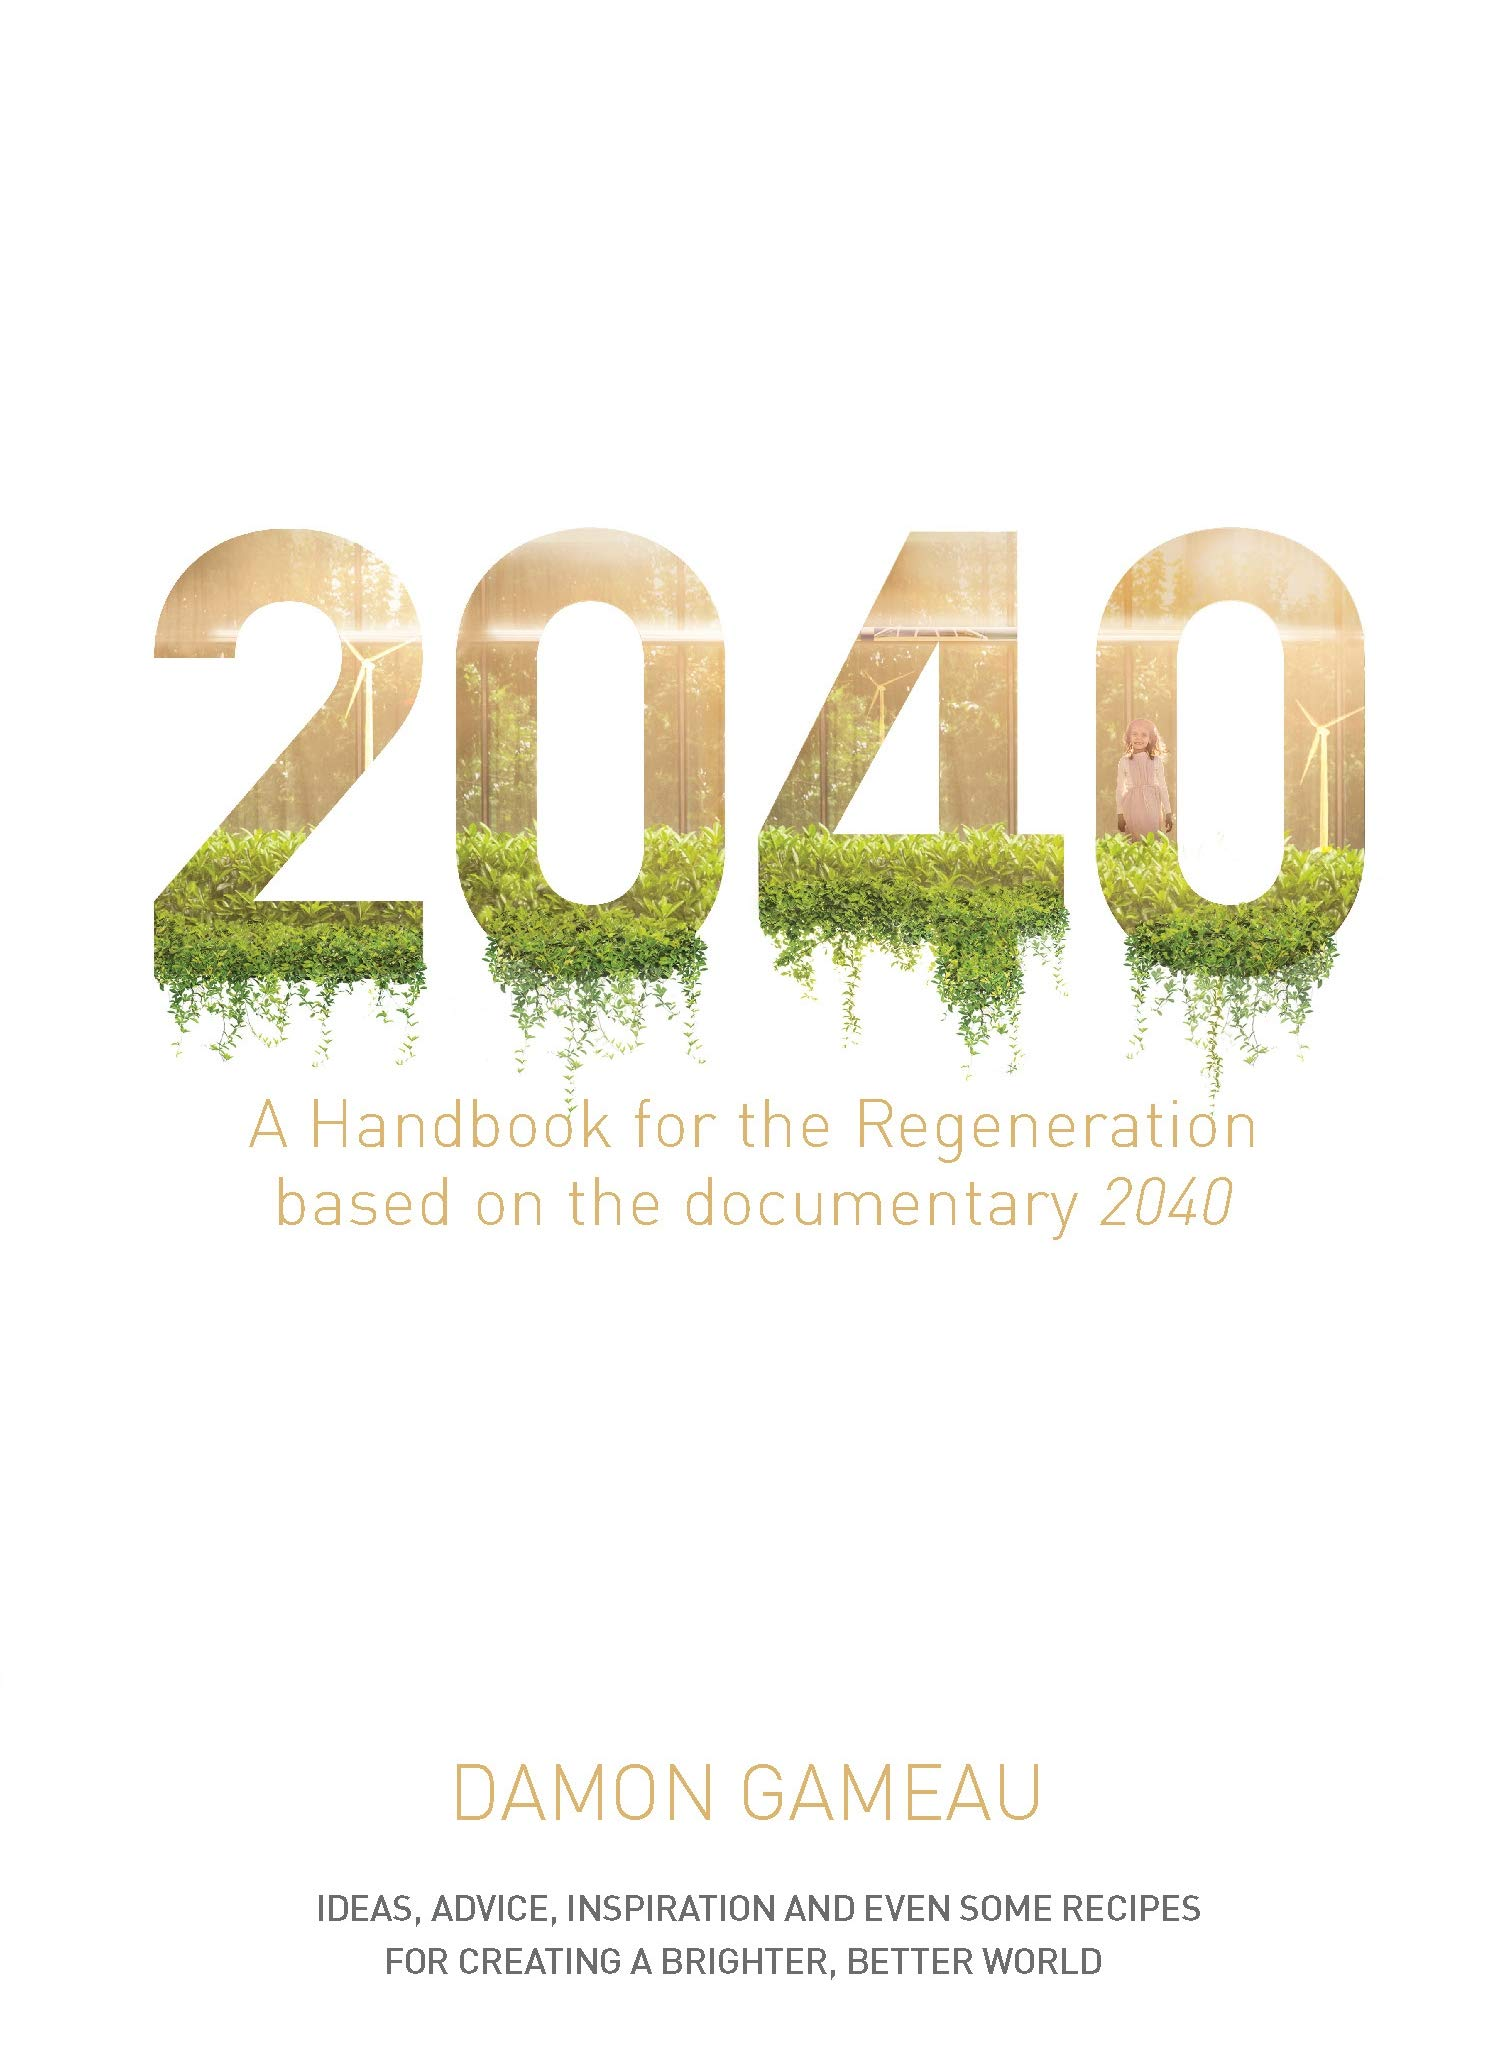 2040: A Handbook for the Regeneration: Based on the Documentary 2040:  Amazon.co.uk: Gameau, Damon: 9781760554149: Books